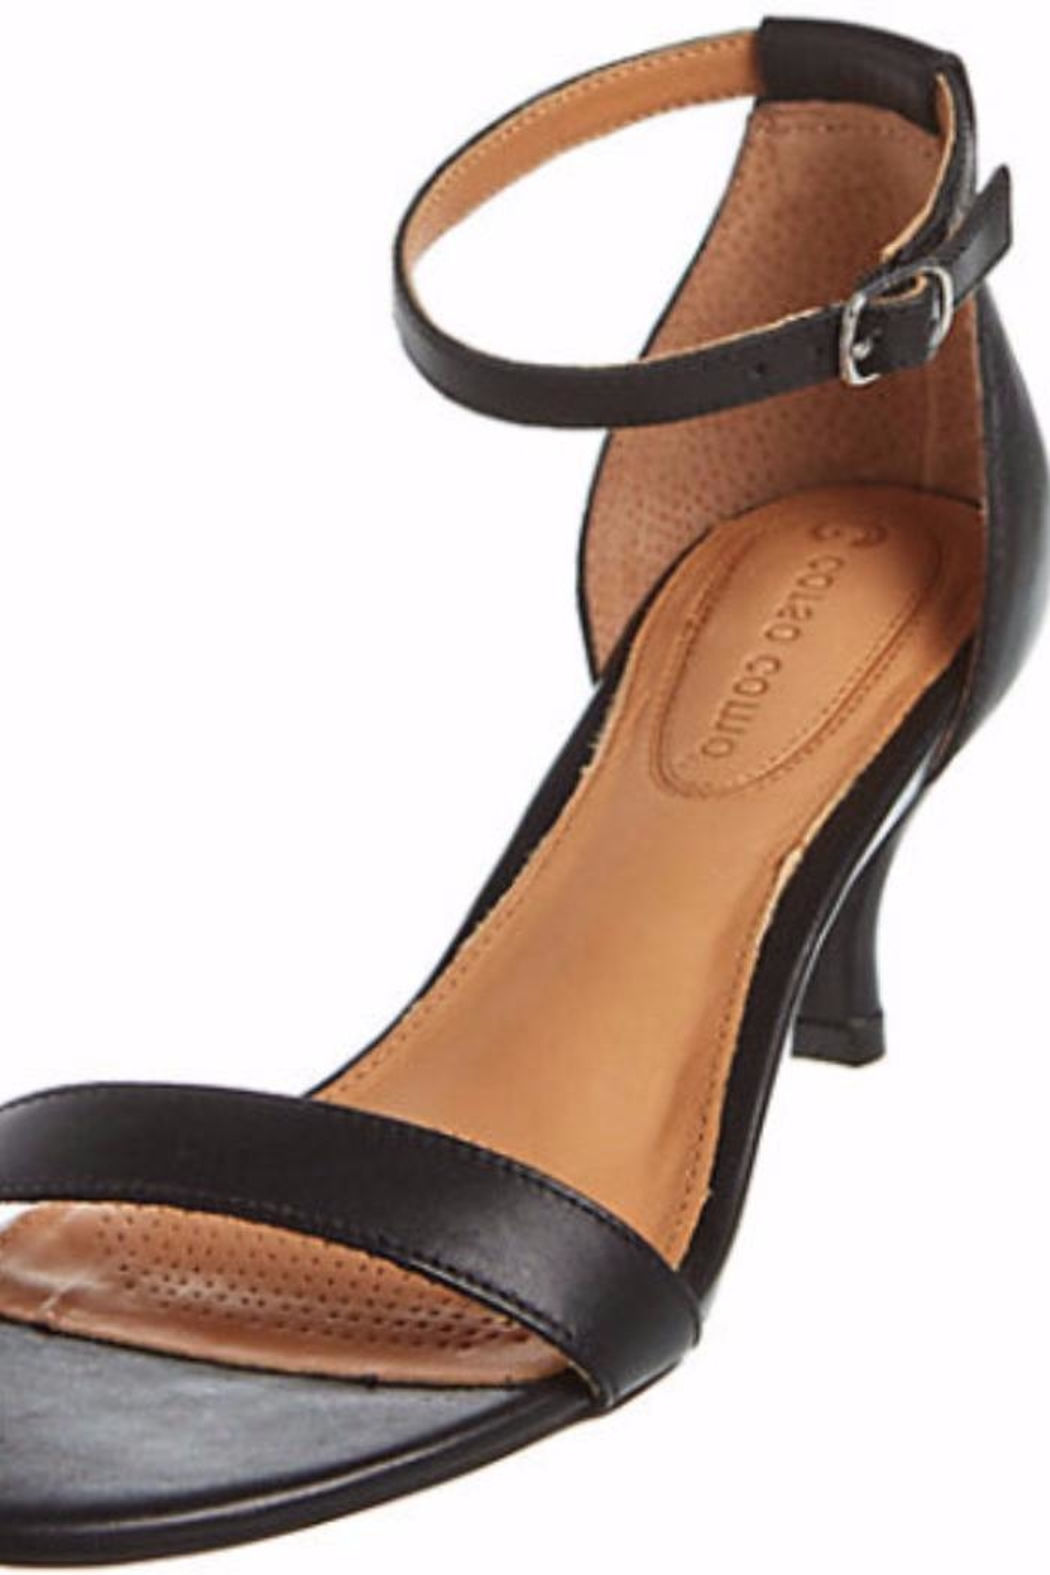 Corso Como Shoes Caitlynn Heeled Sandals - Front Cropped Image